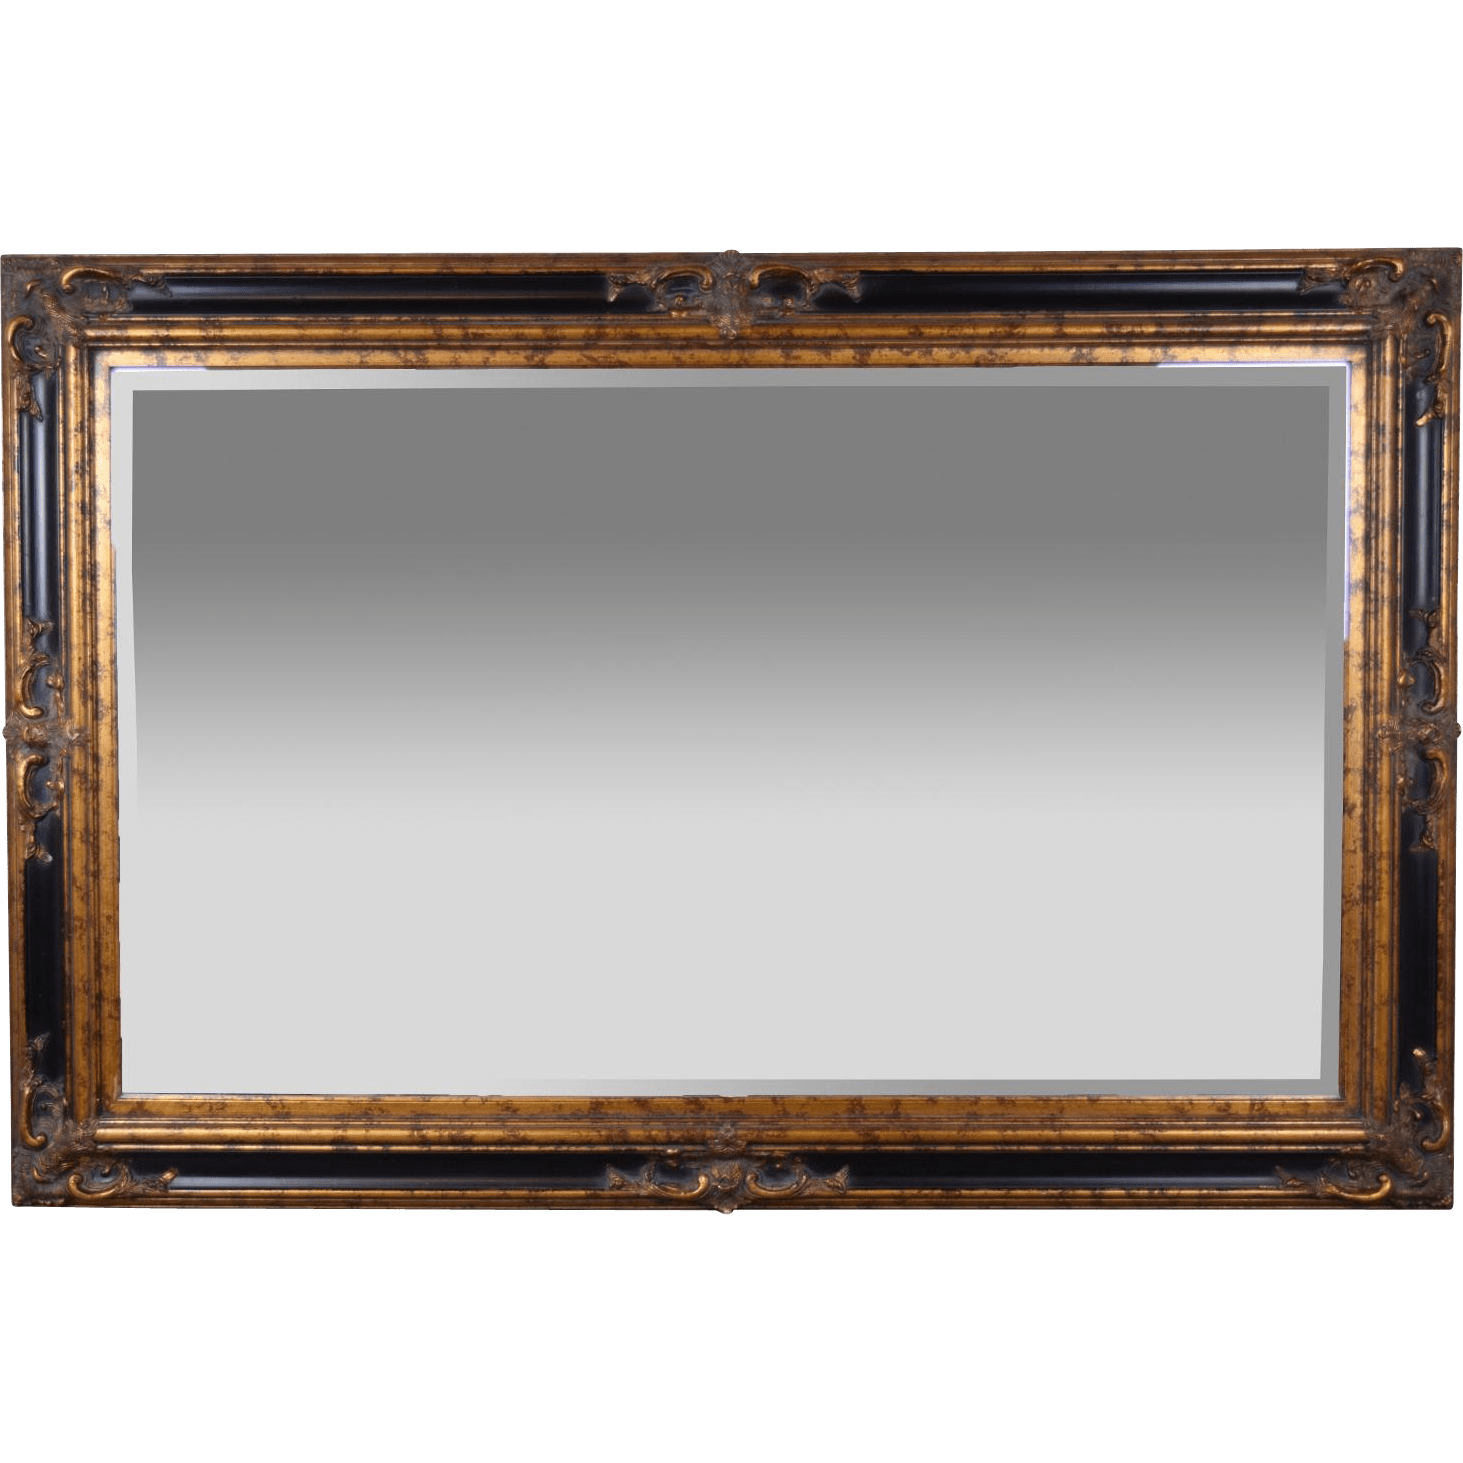 Antique Wood Frame Wall Mirror Beveled Glass